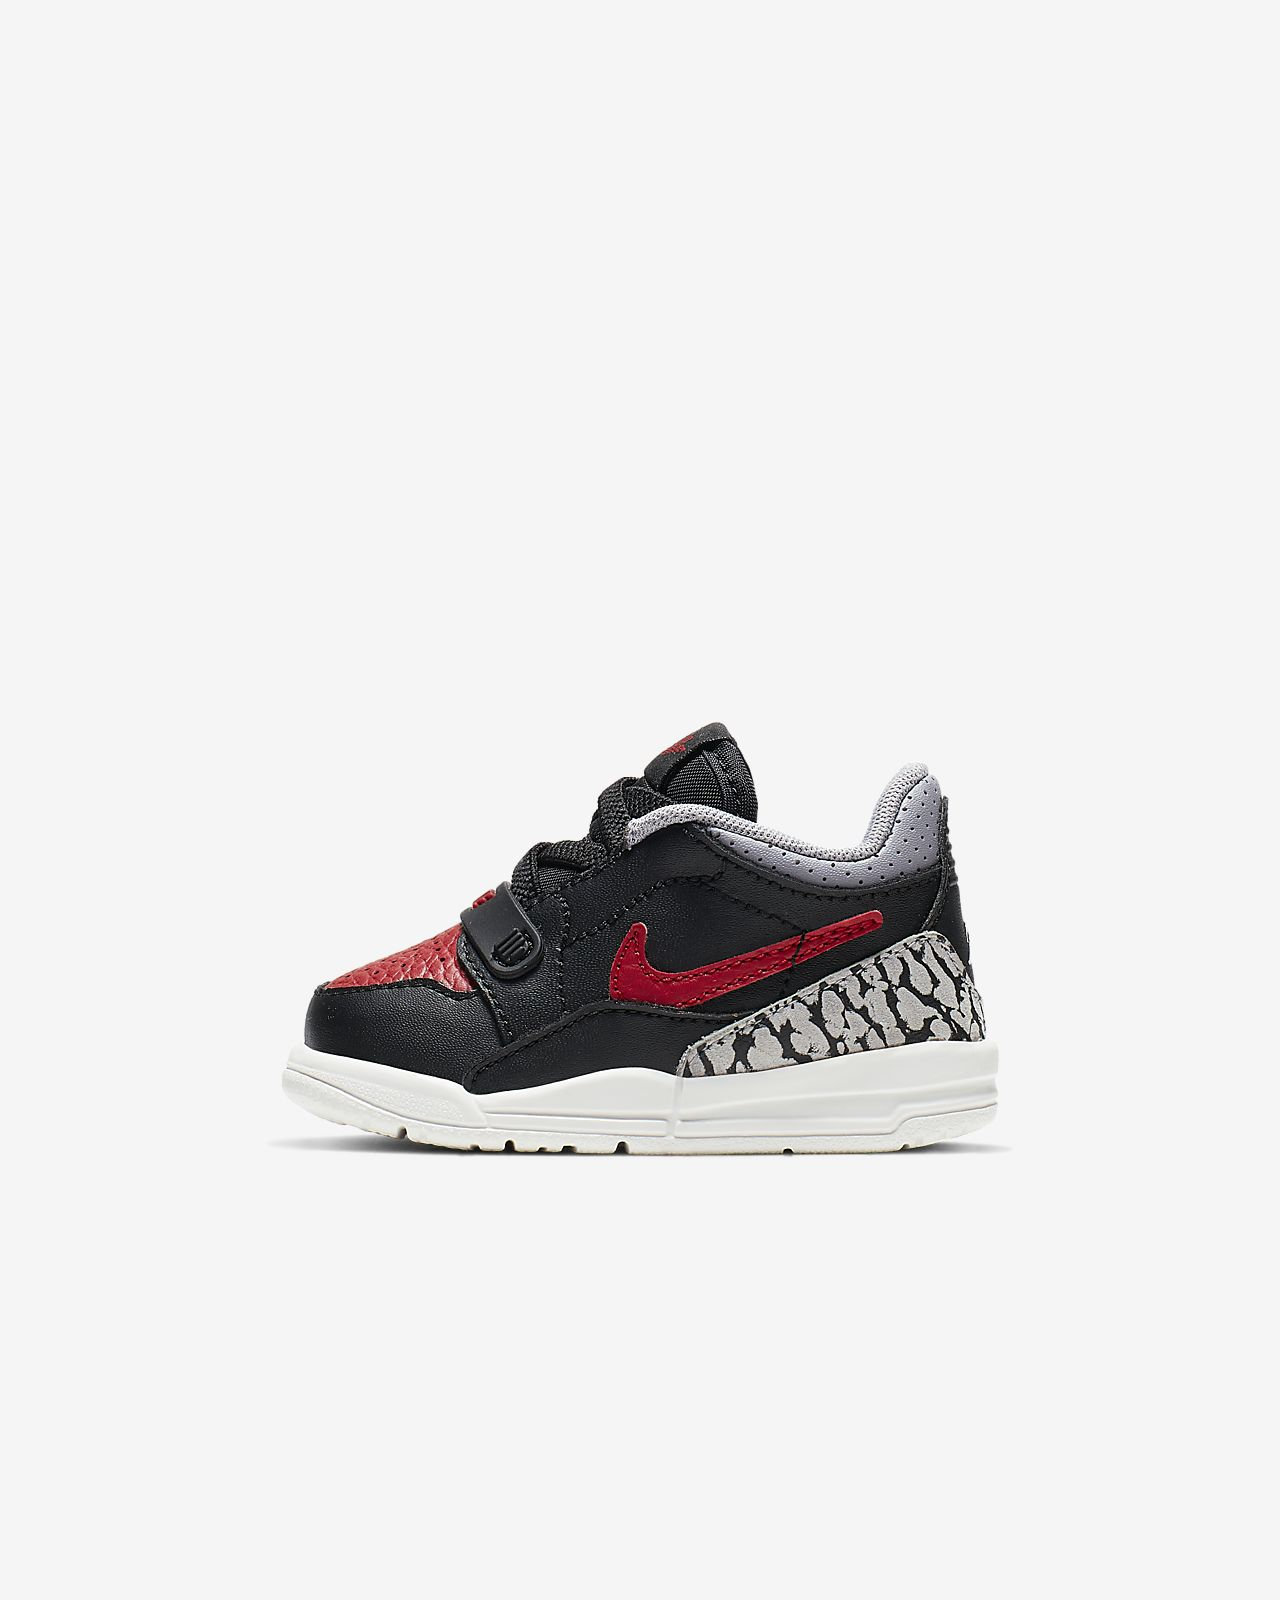 Air Jordan Legacy 312 Low Baby/Toddler Shoe